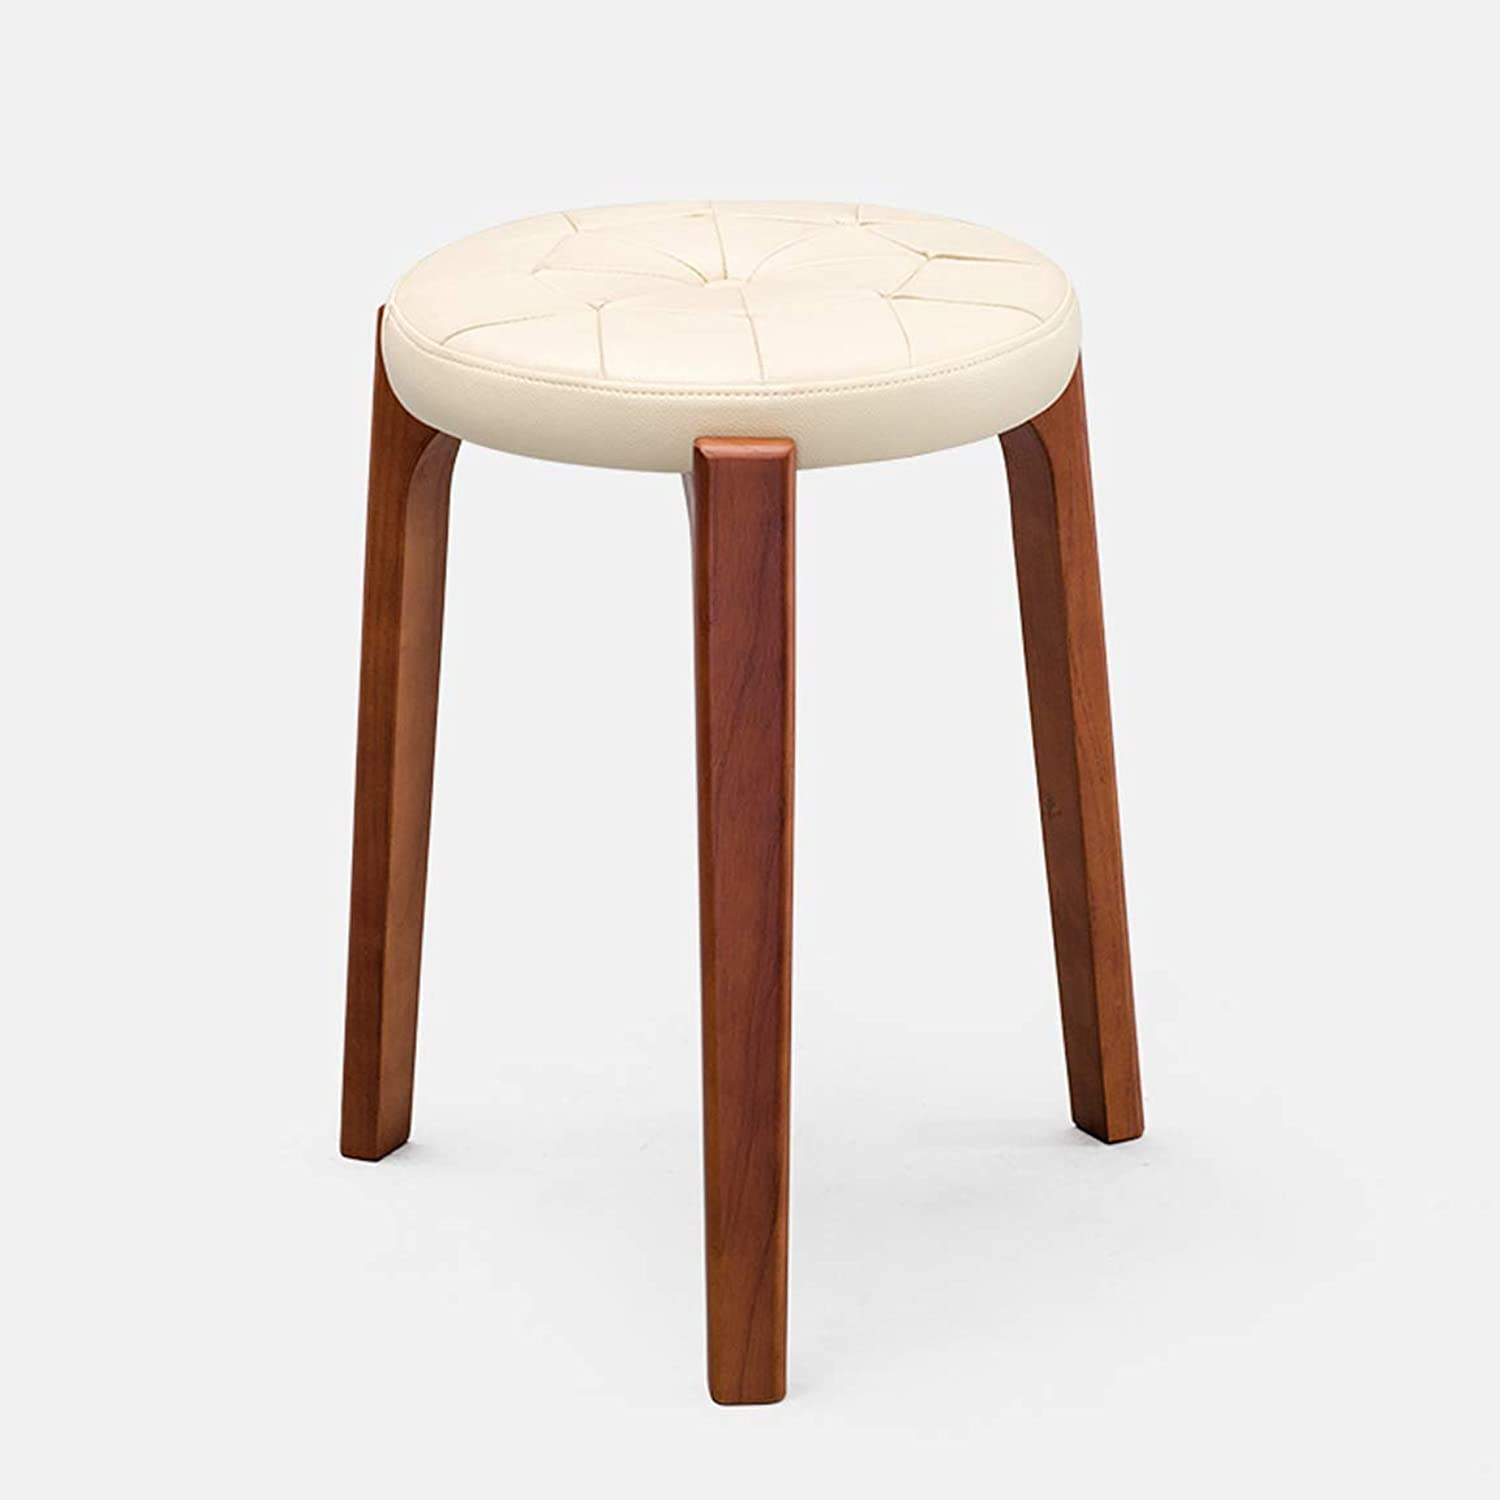 HLQW Creative Small Stool, Solid Wooden Dining Stool, Square Stool, Dressing Stool, Simple Fashionable Dressing Stool, Bench, Household Stool, Brown Leg 2